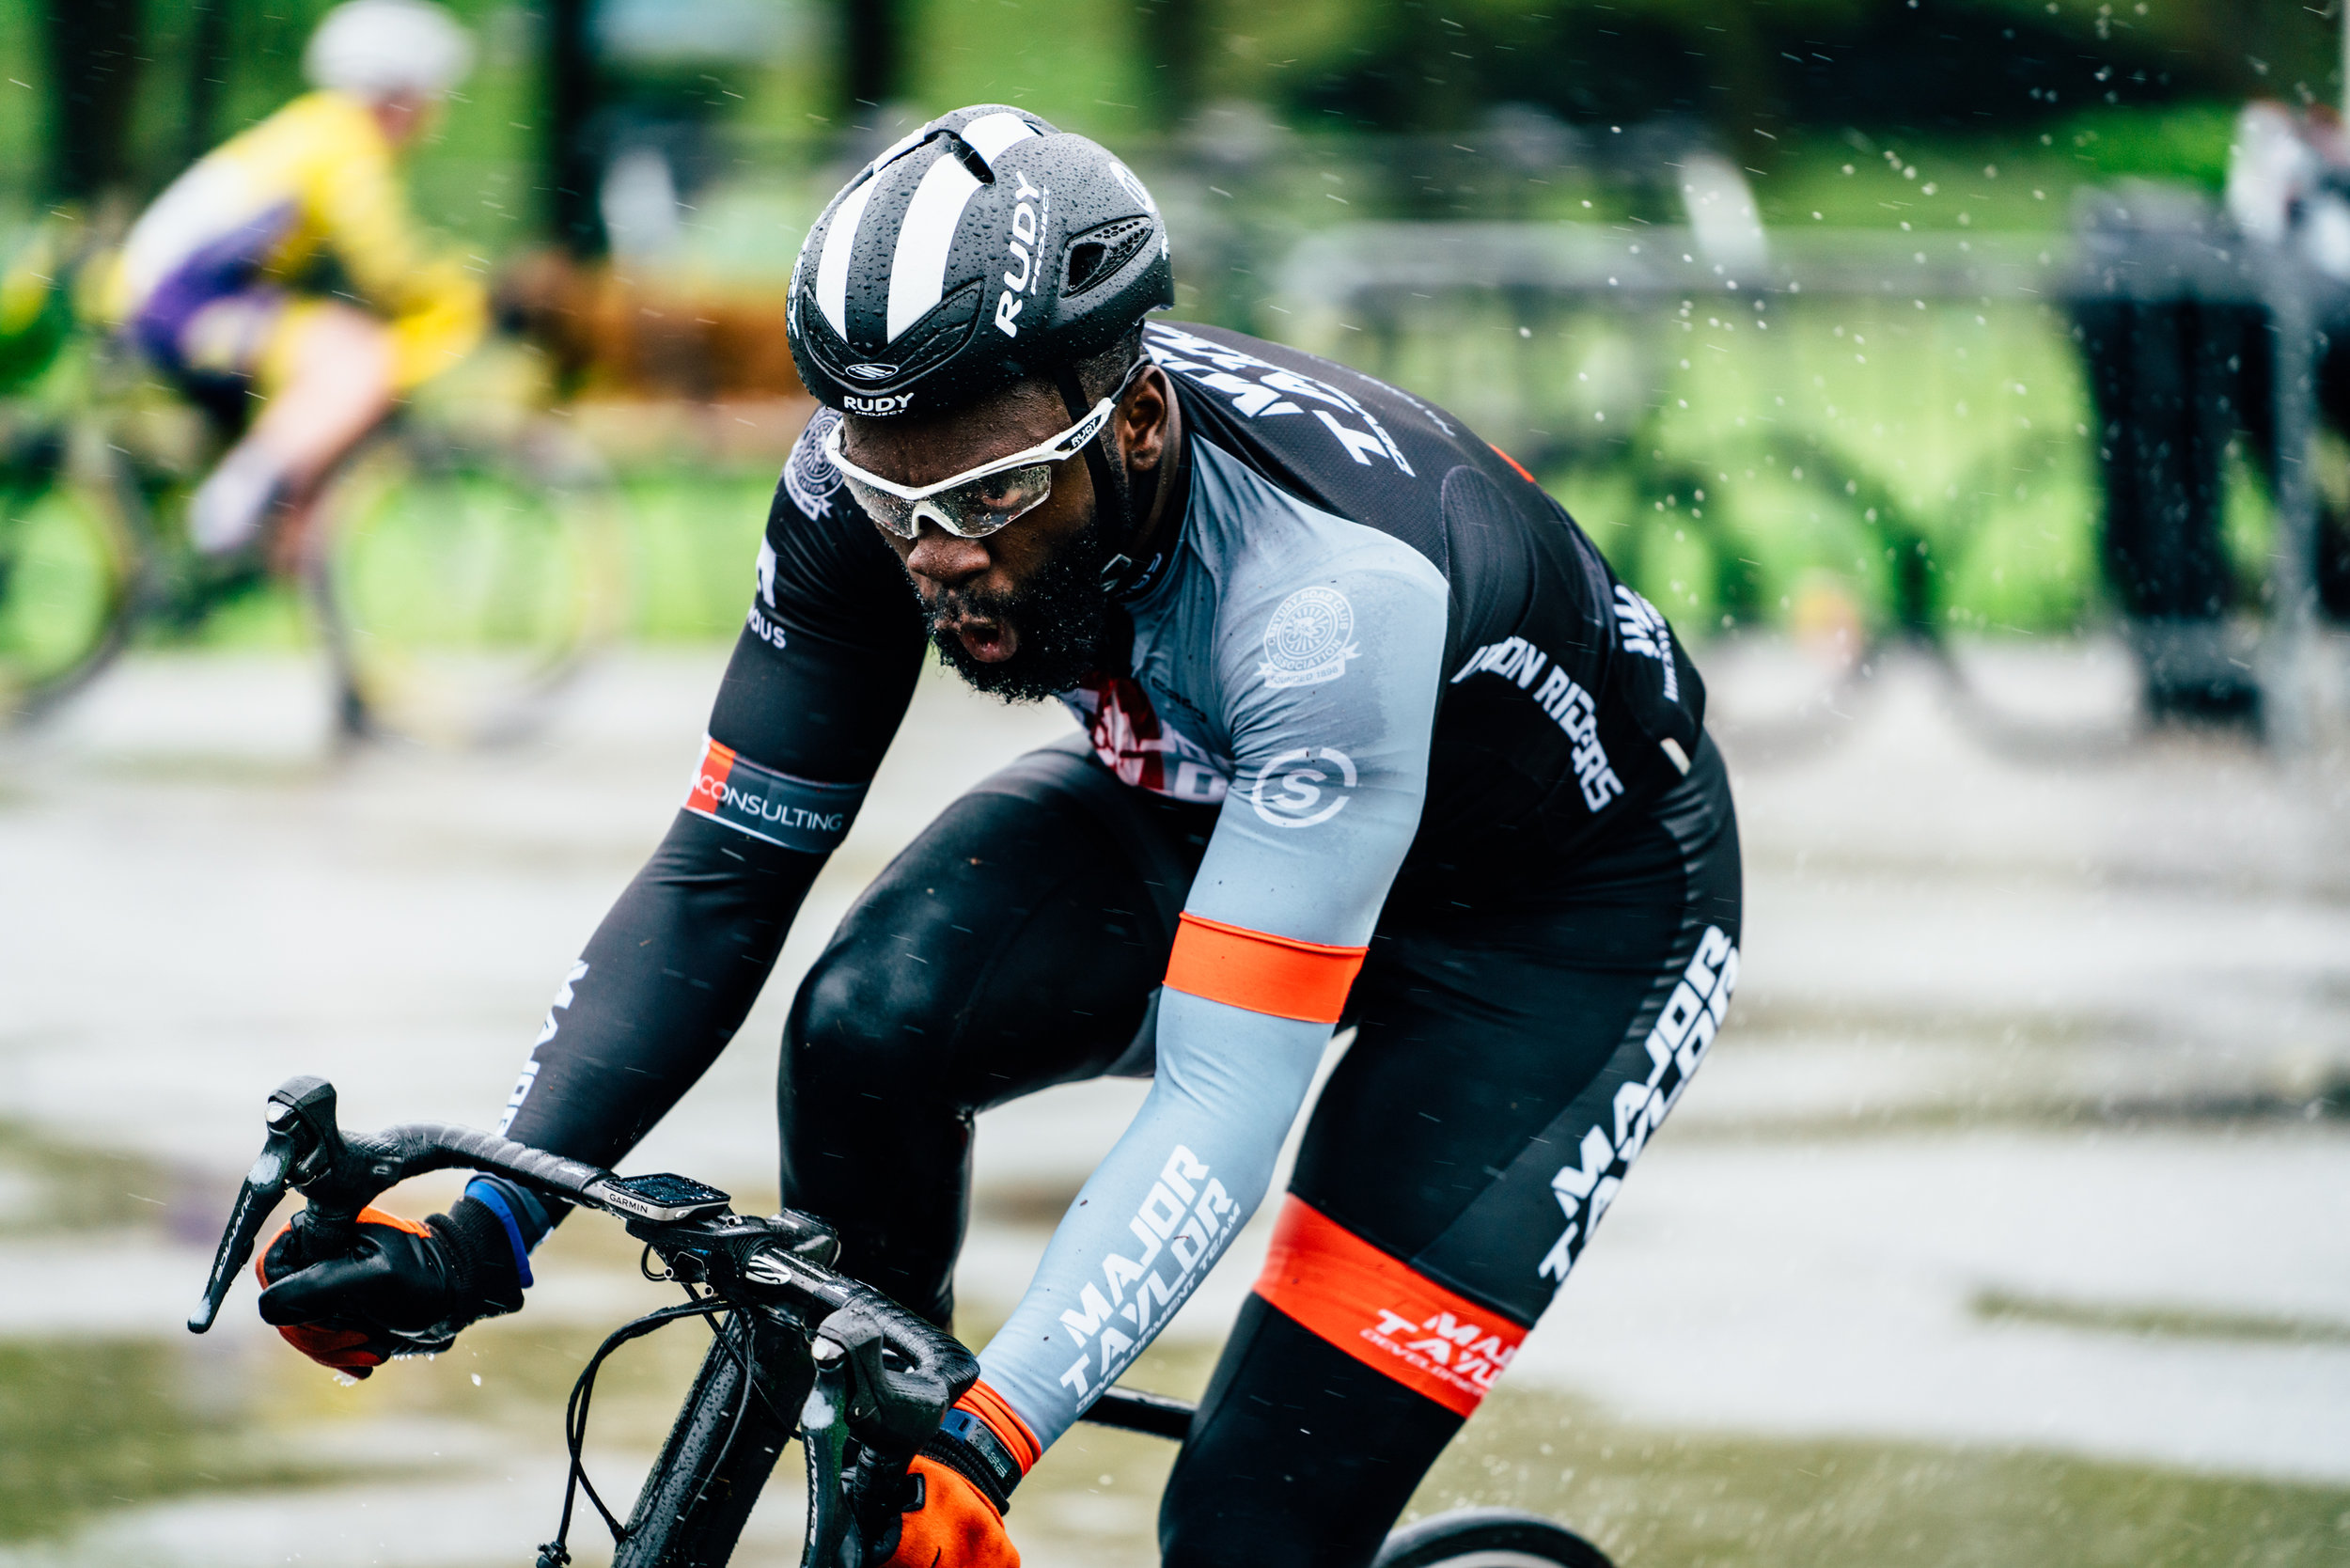 Photo Rhetoric - To Be Determined - Zach Koop Memorial Crit at Orchard Bearch-3008.jpg